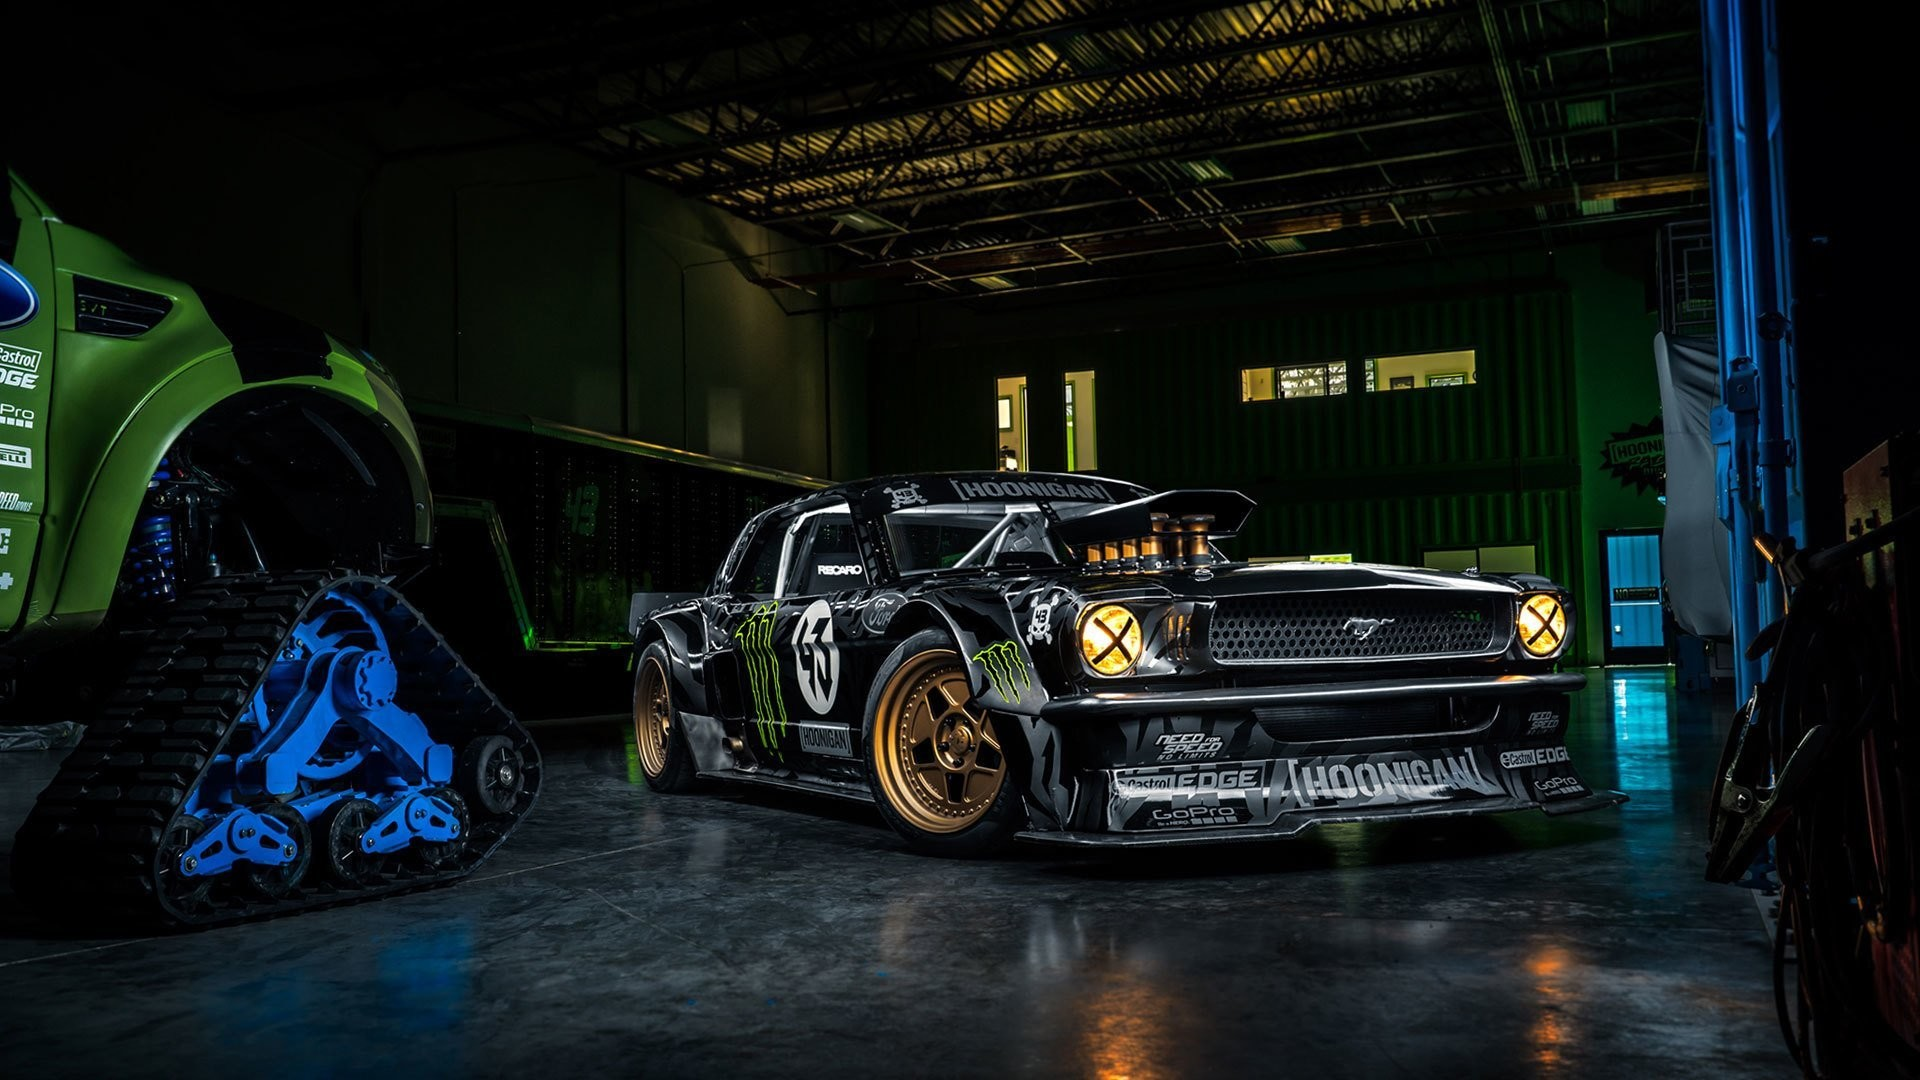 1920x1080 ford mustang rtr 1965 hoonicorn 845 hp gymkhana seven front ken block  monster energy